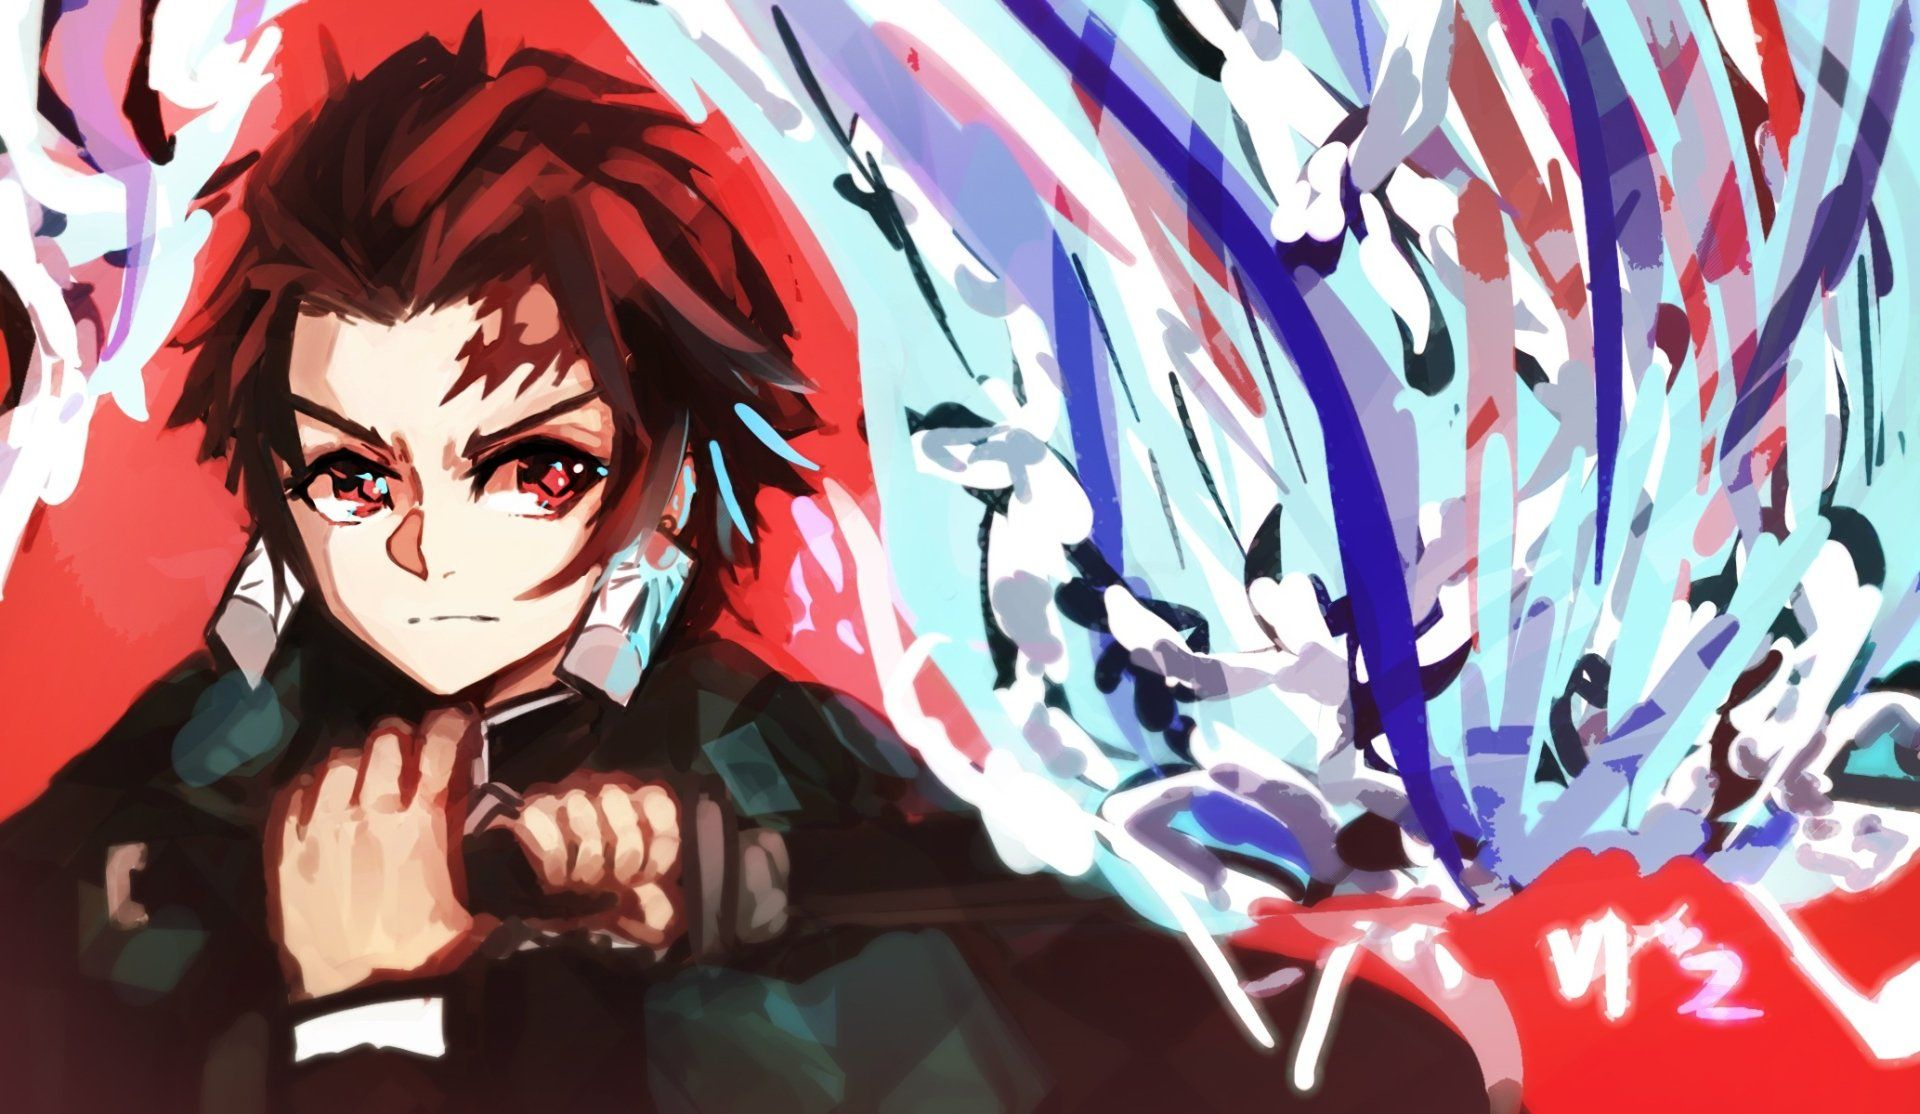 Anime Demon Slayer Kimetsu No Yaiba Tanjirou Kamado Wallpaper Anime Wallpaper Download Anime Wallpaper Hd Anime Wallpapers